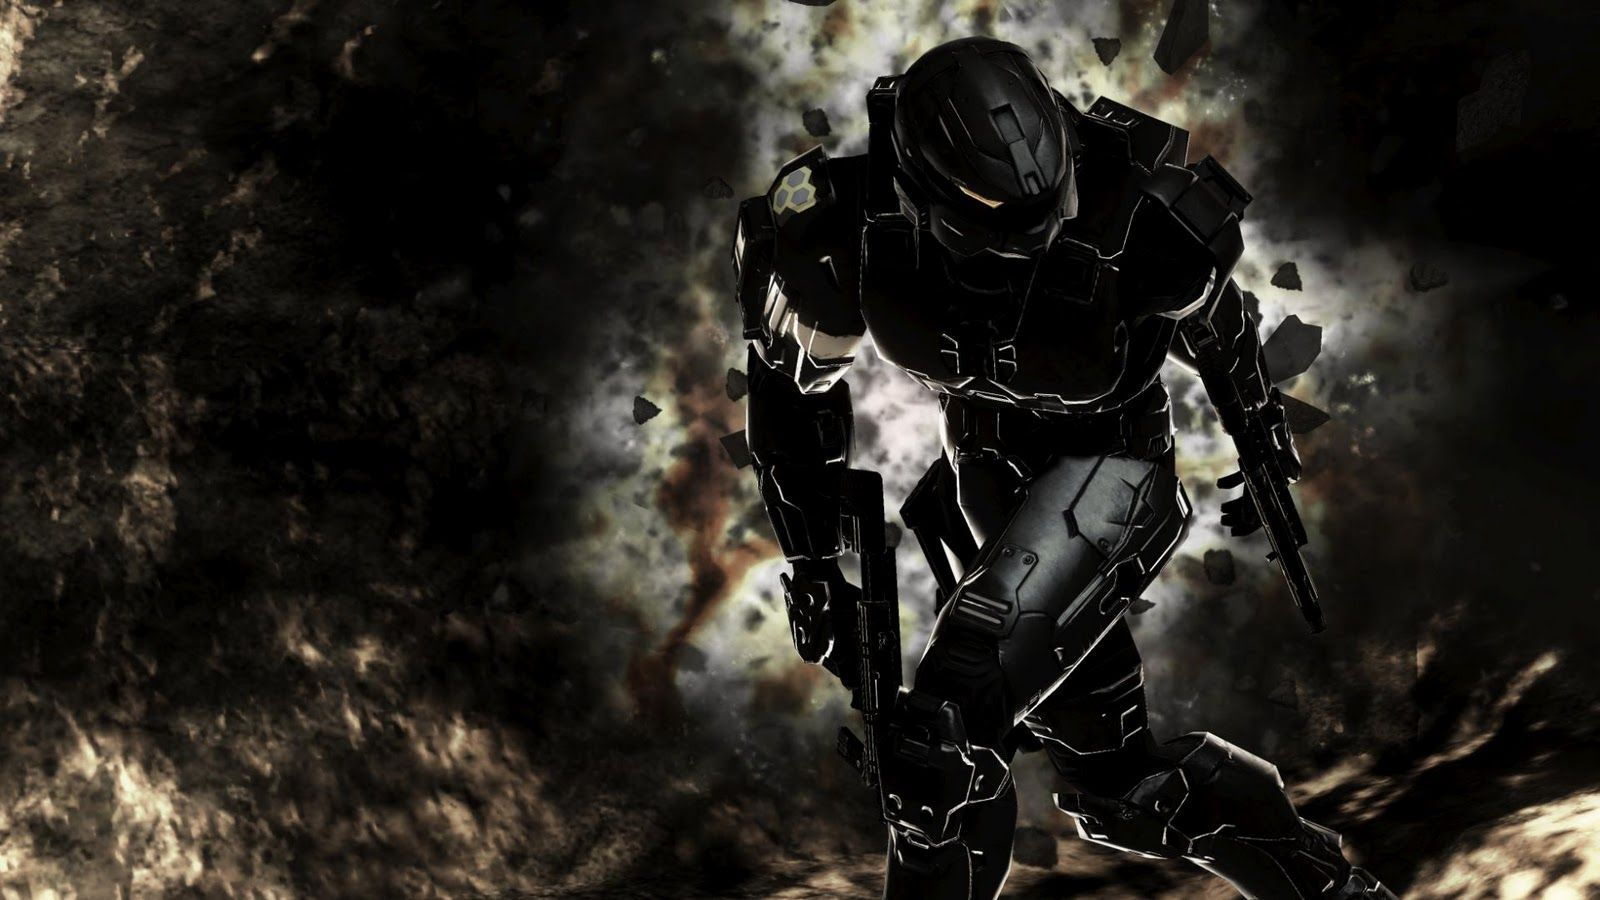 full hd p halo wallpapers hd desktop backgrounds 1600 900 halo hd